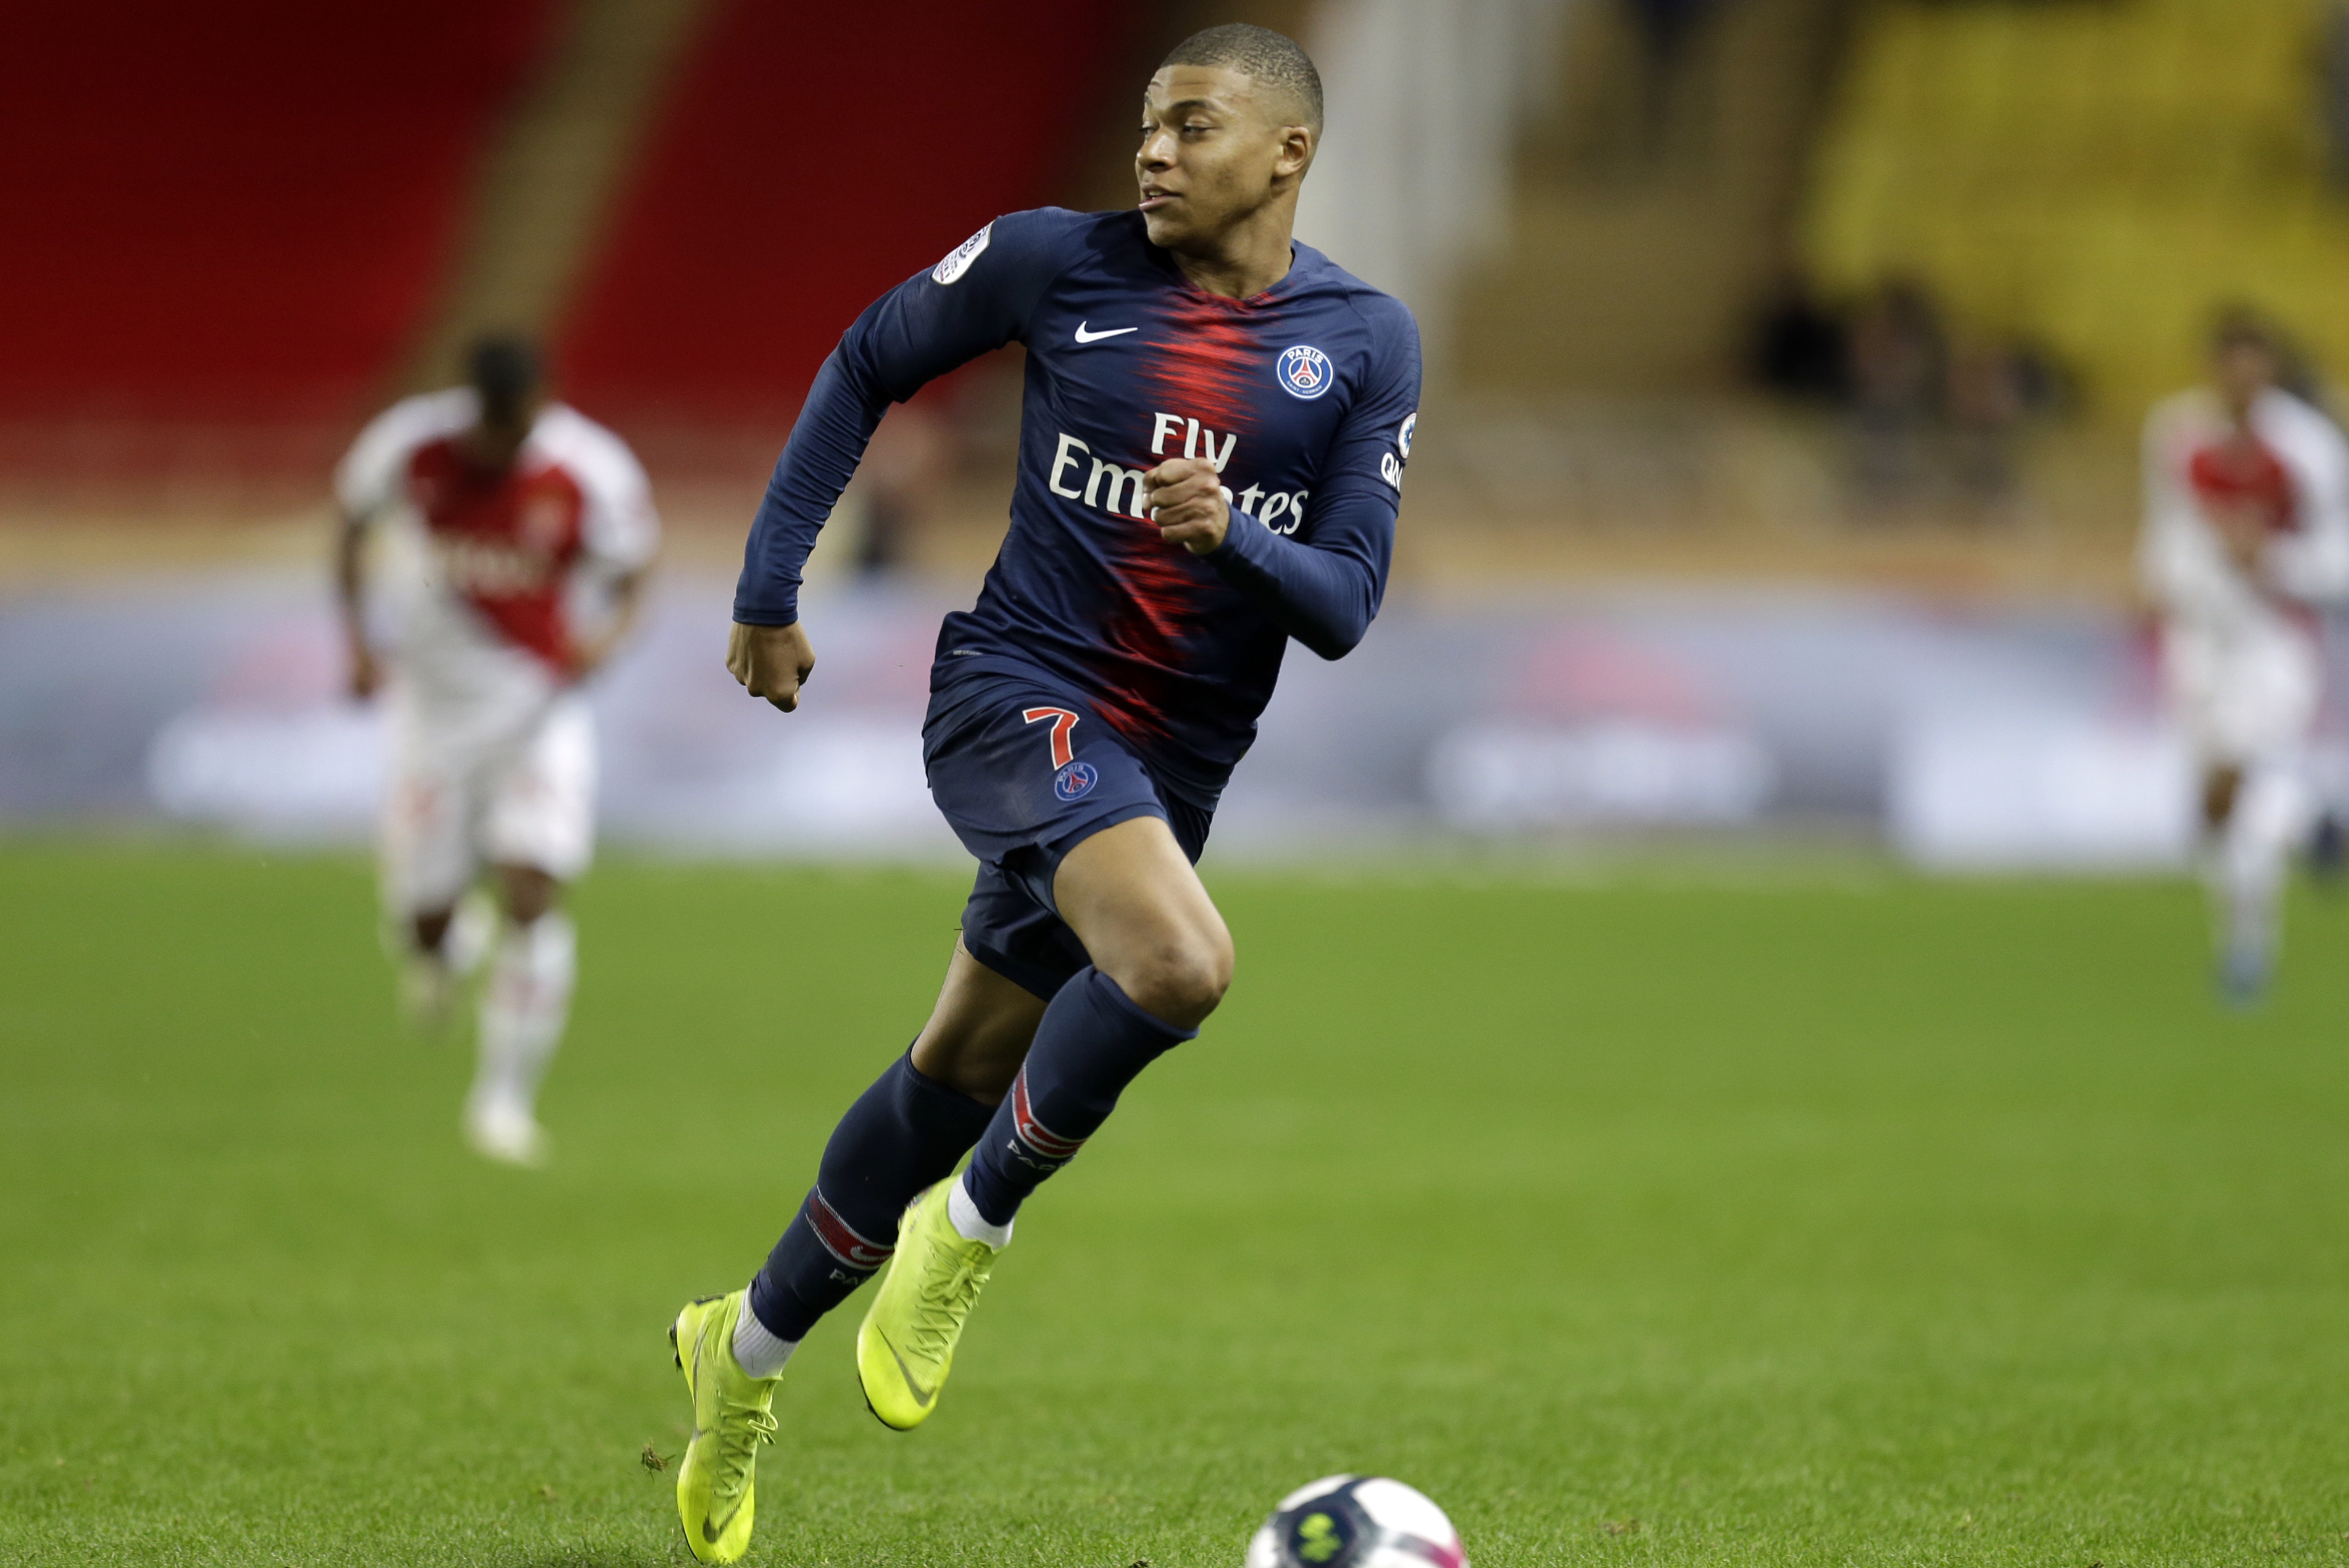 Kylian Mbappe Suffers Hamstring Injury Out At Least 4 Weeks For Psg Bleacher Report Latest News Videos And Highlights